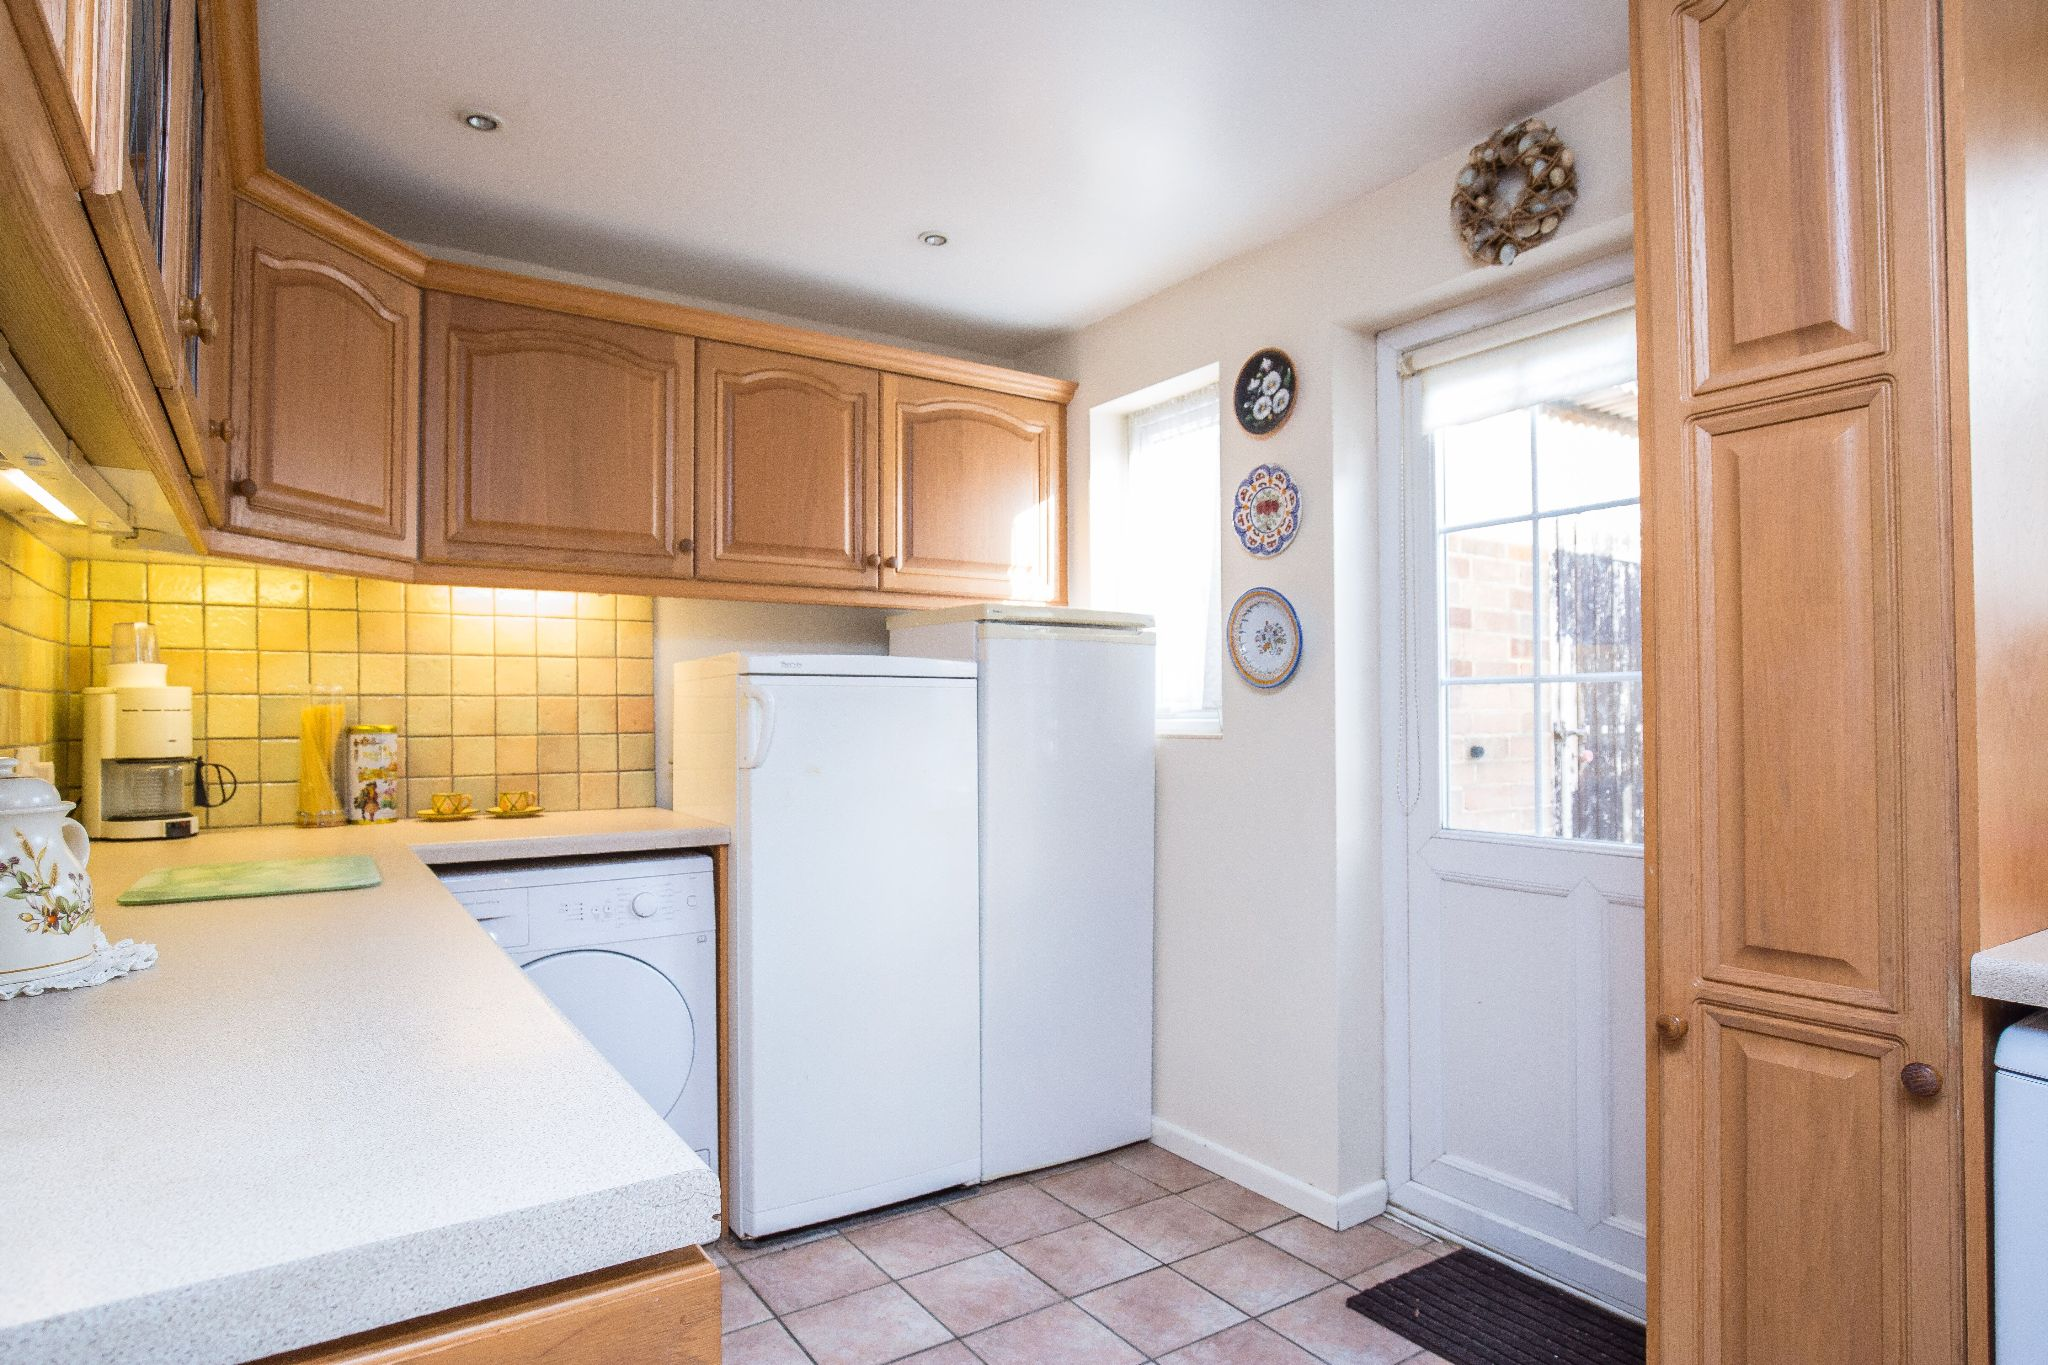 3 bedroom mid terraced house SSTC in Welham Green - Photograph 6